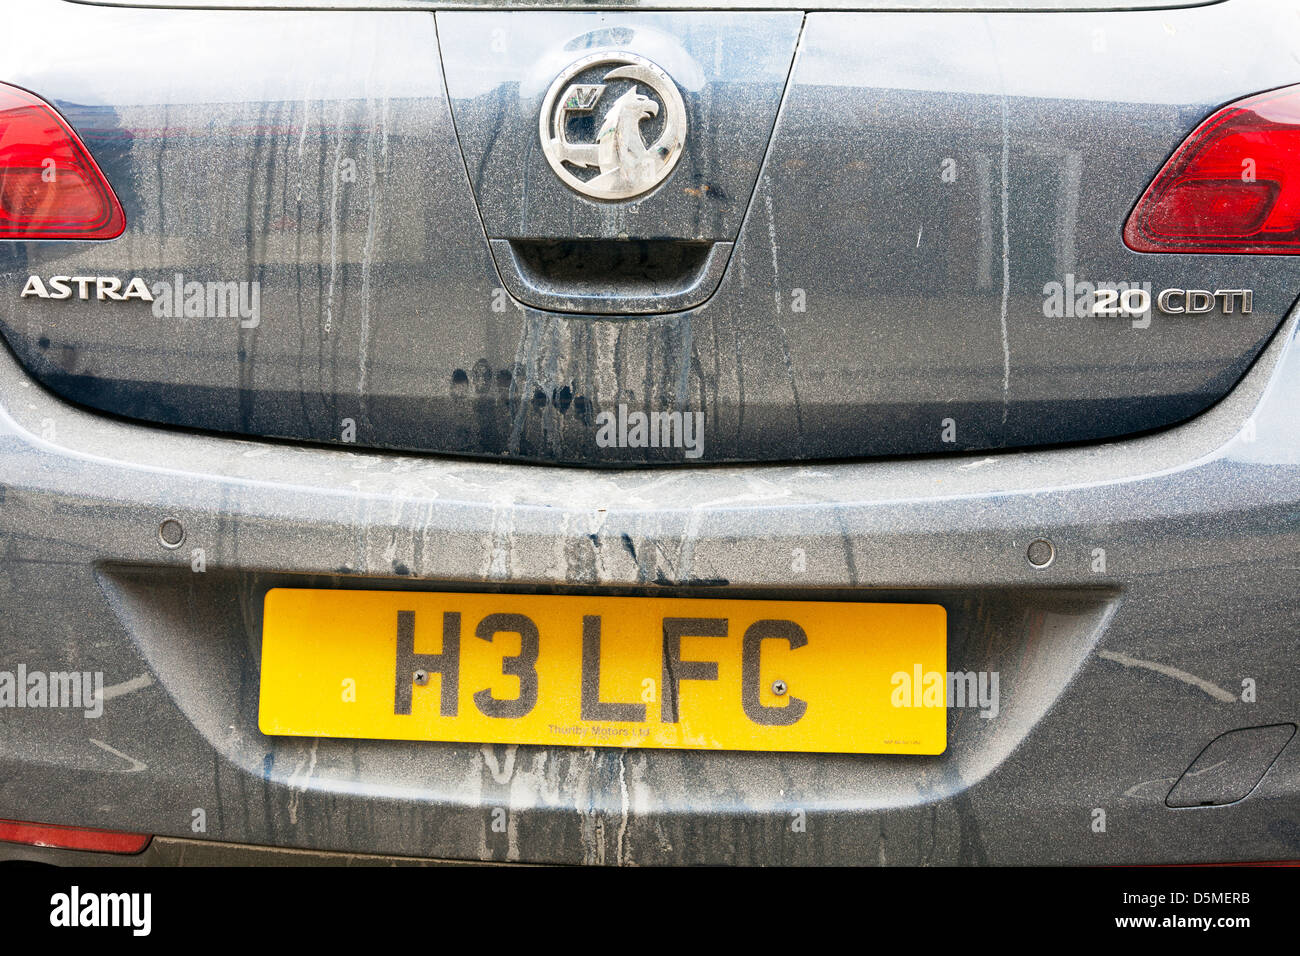 Very dirty mucky rear of car due to bad weather back end of Vauxhall Astra - Stock Image